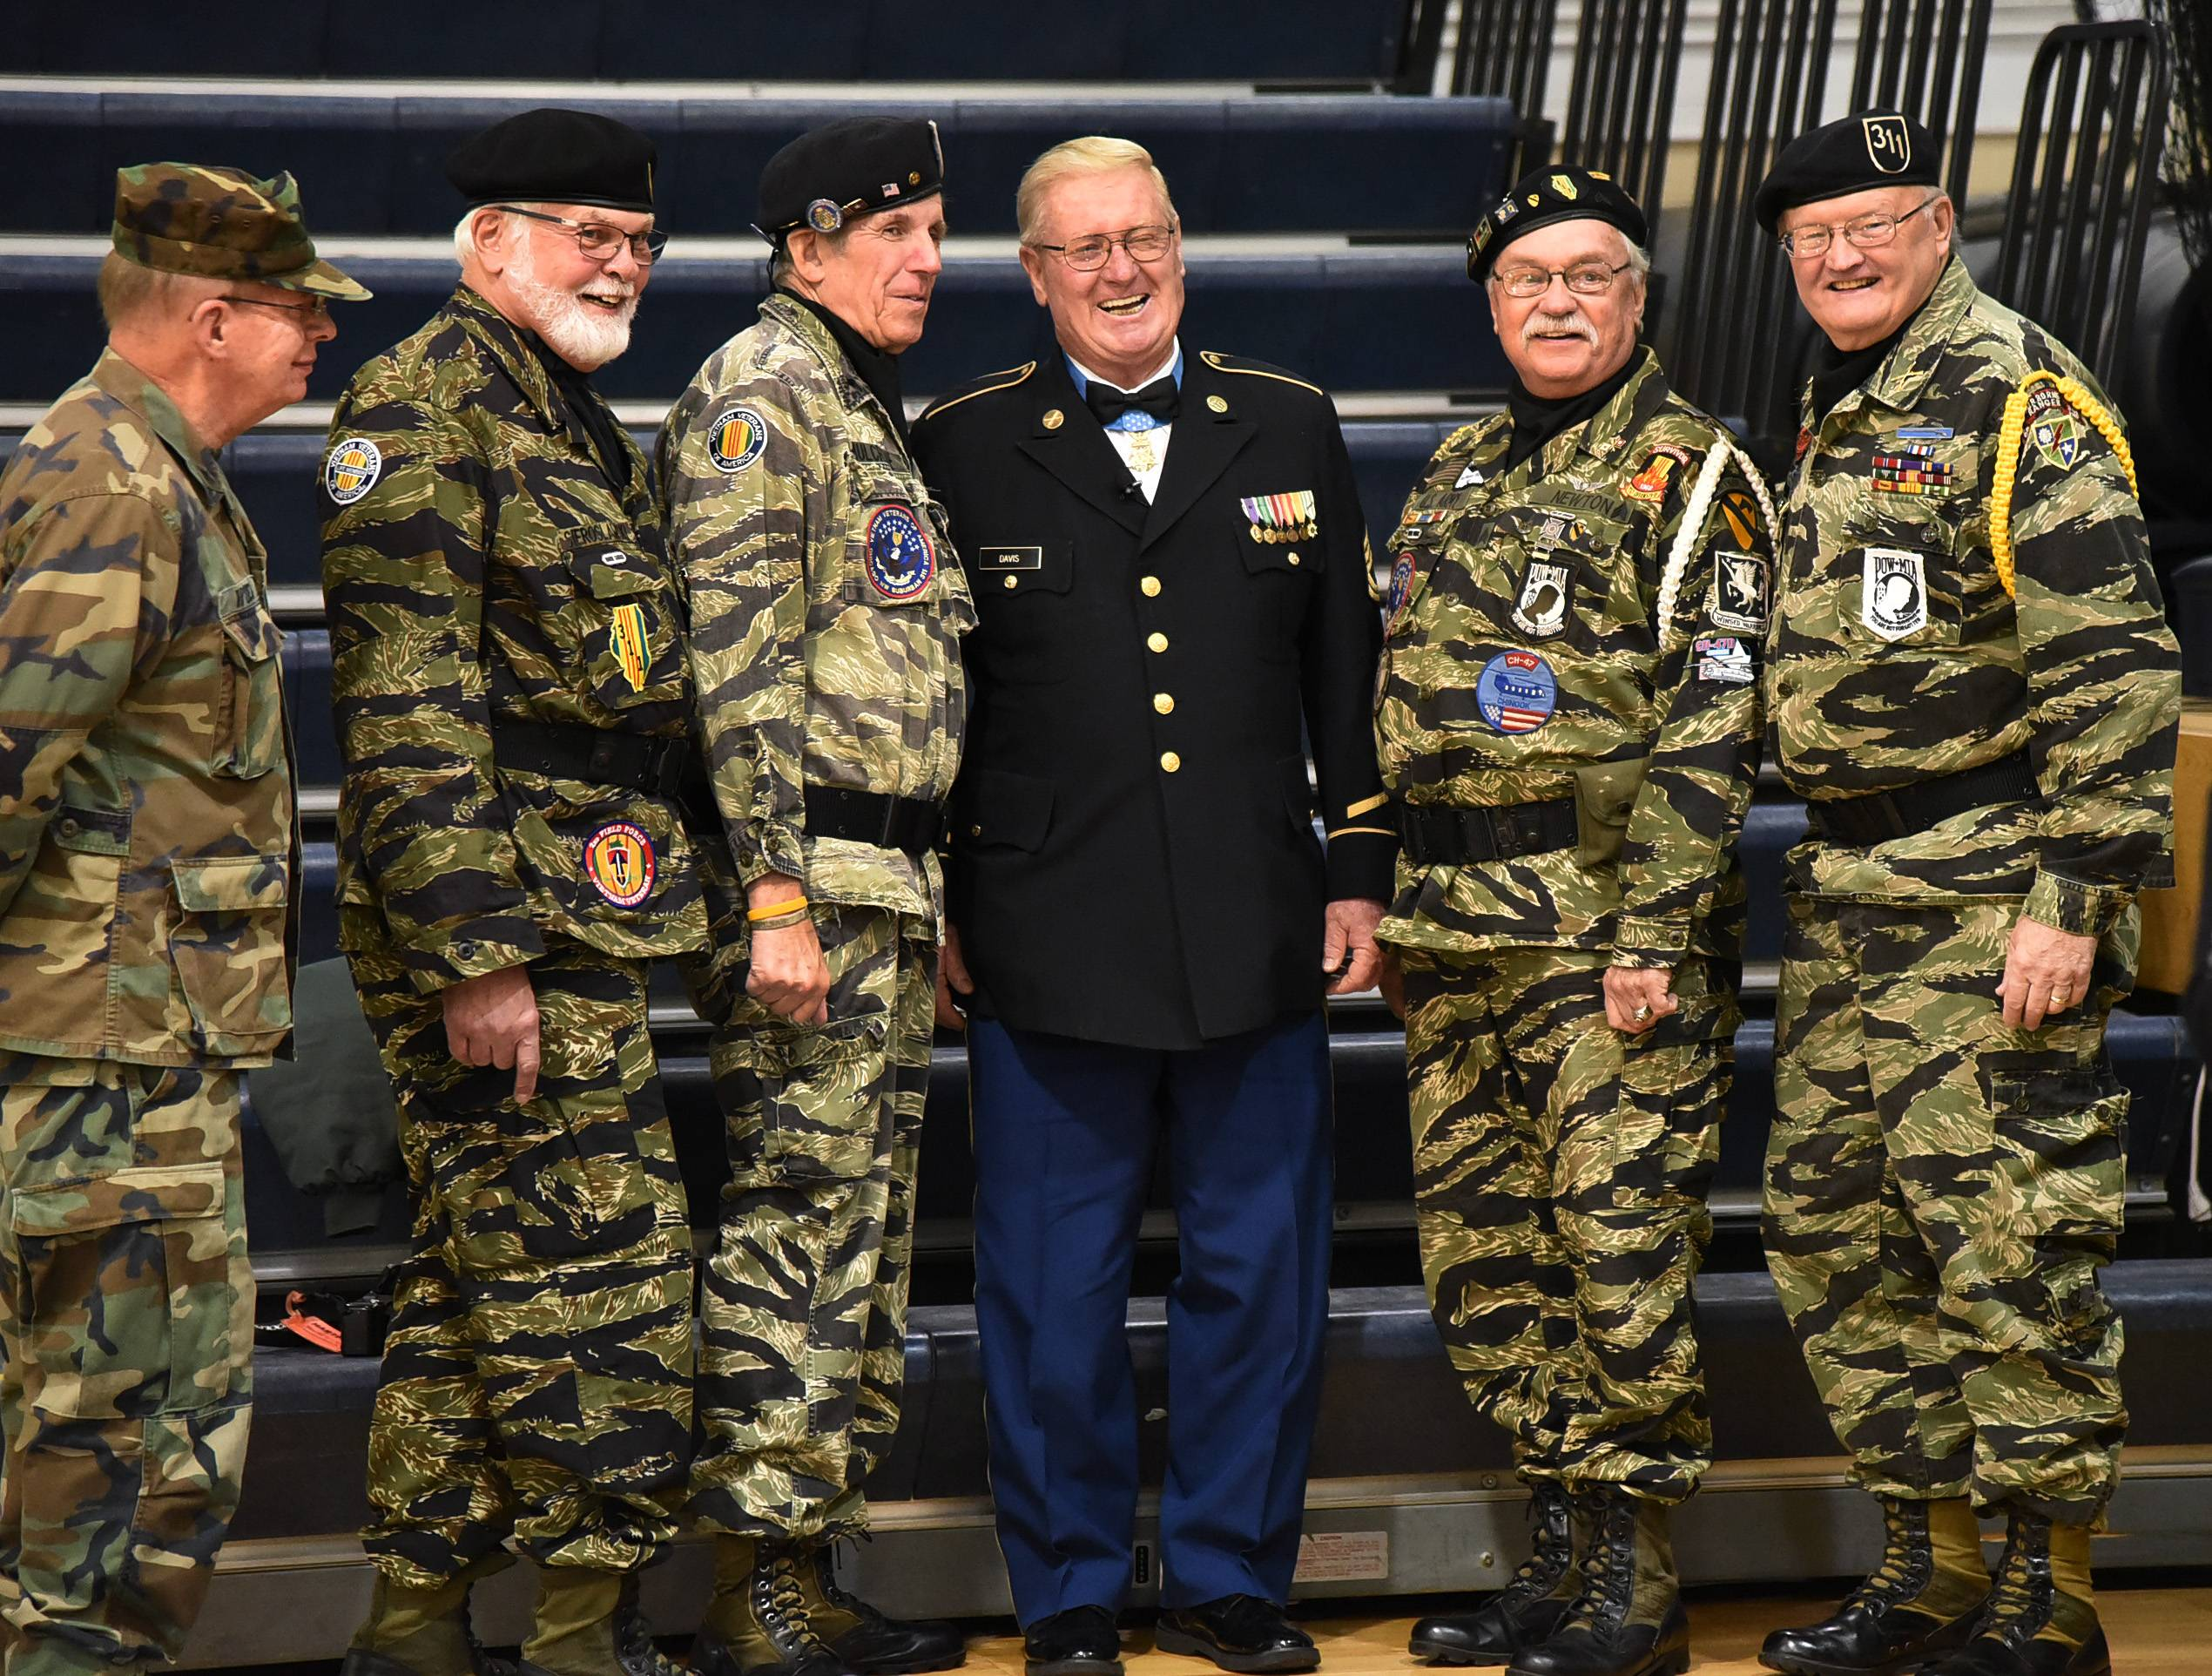 Retired Army Sgt. Sammy L. Davis, also known as the real Forrest Gump, poses with the color guard Monday while visiting St. Viator High School in Arlington Heights.